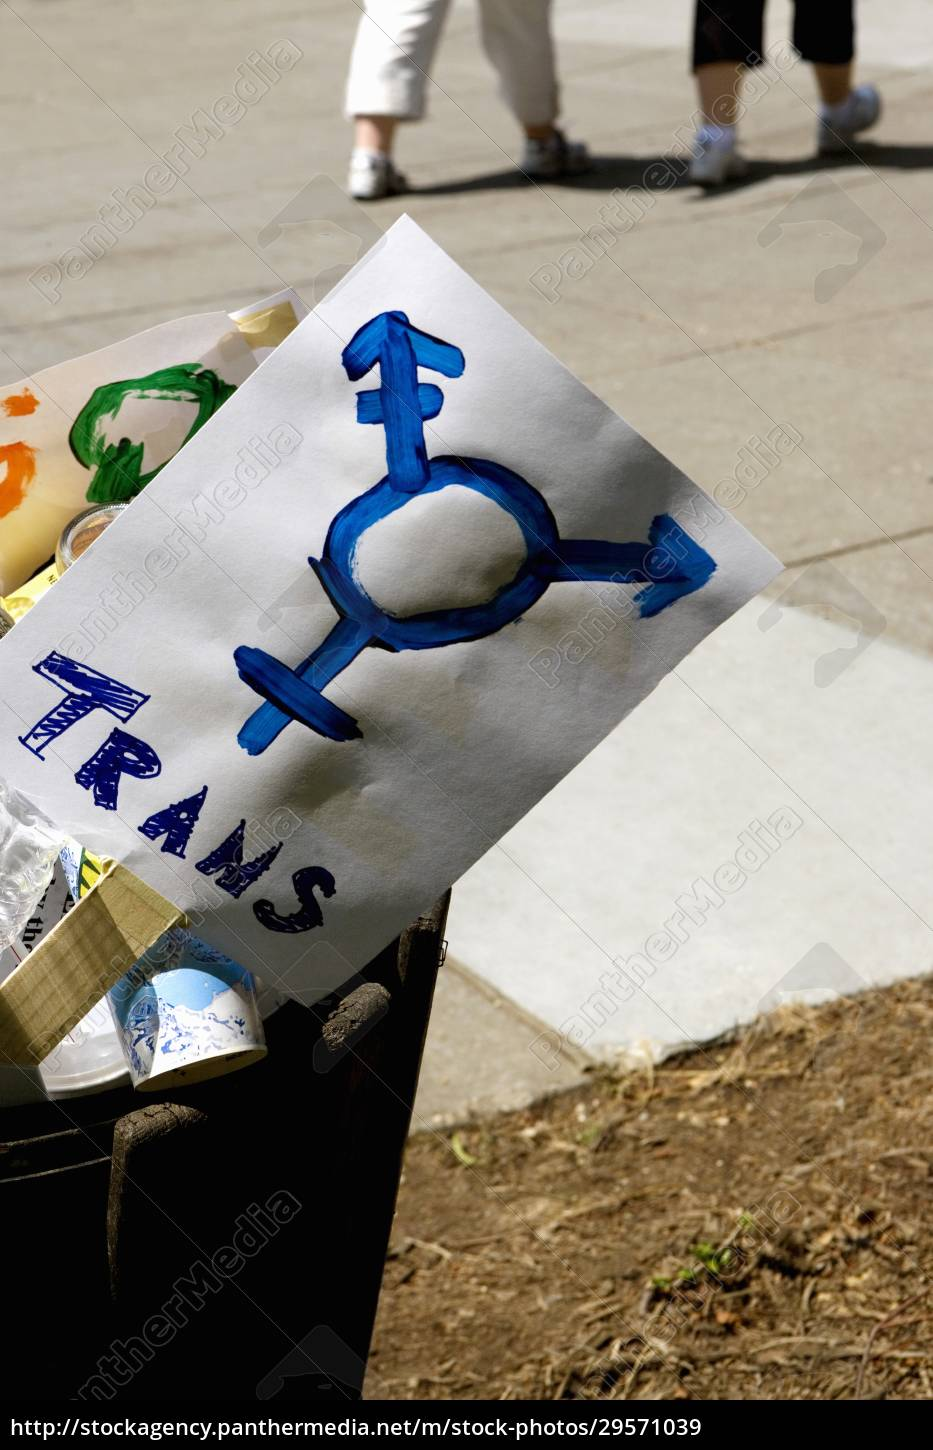 close-up, of, gay, pride, symbol, banners - 29571039